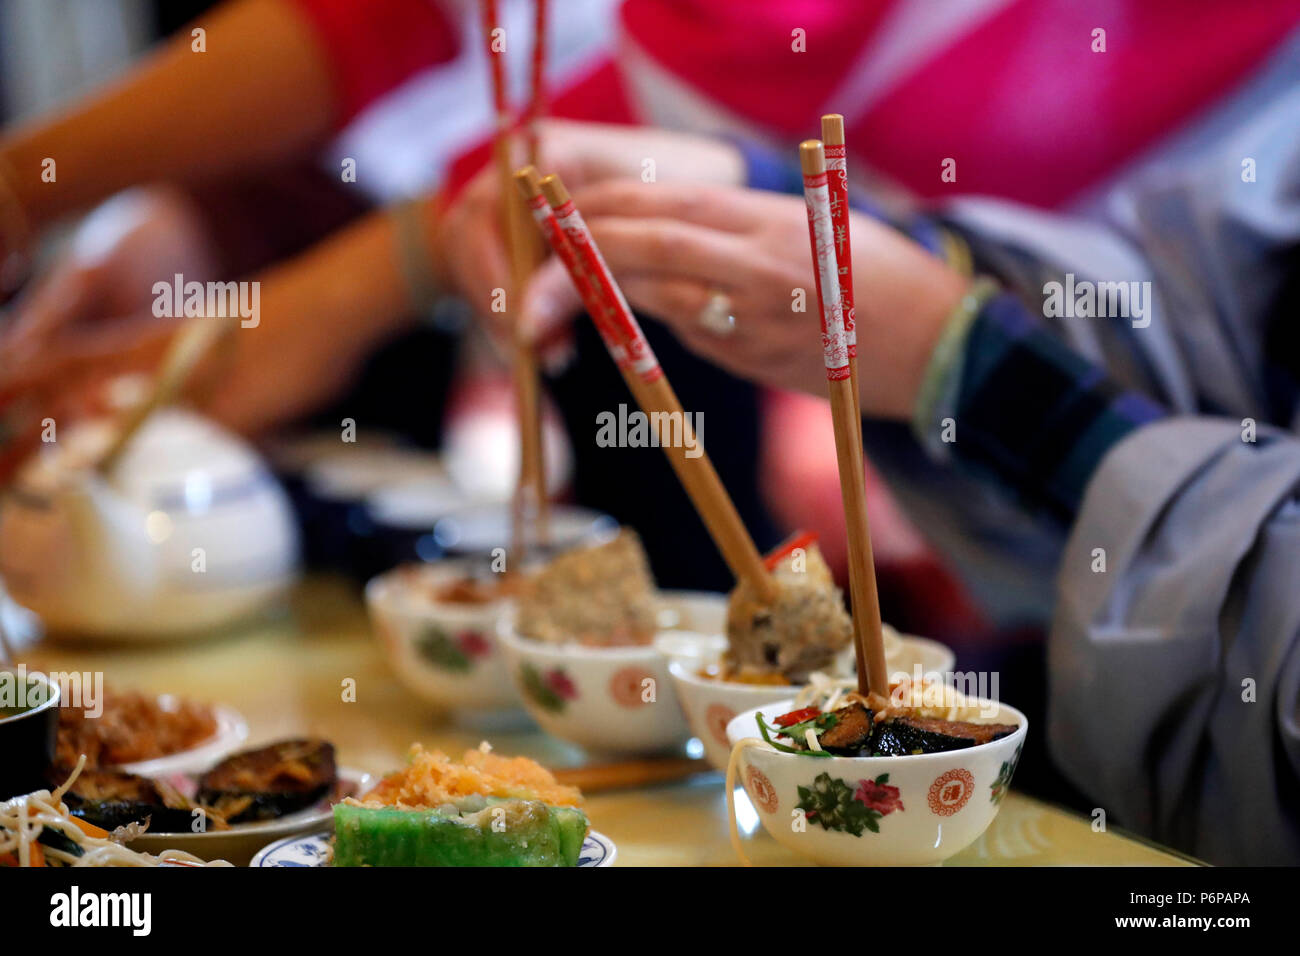 Chua Tu An Buddhist temple. Ancestor worship. Buddhist ceremony and vegetarian offerings. Saint-Pierre en Faucigny. France. - Stock Image